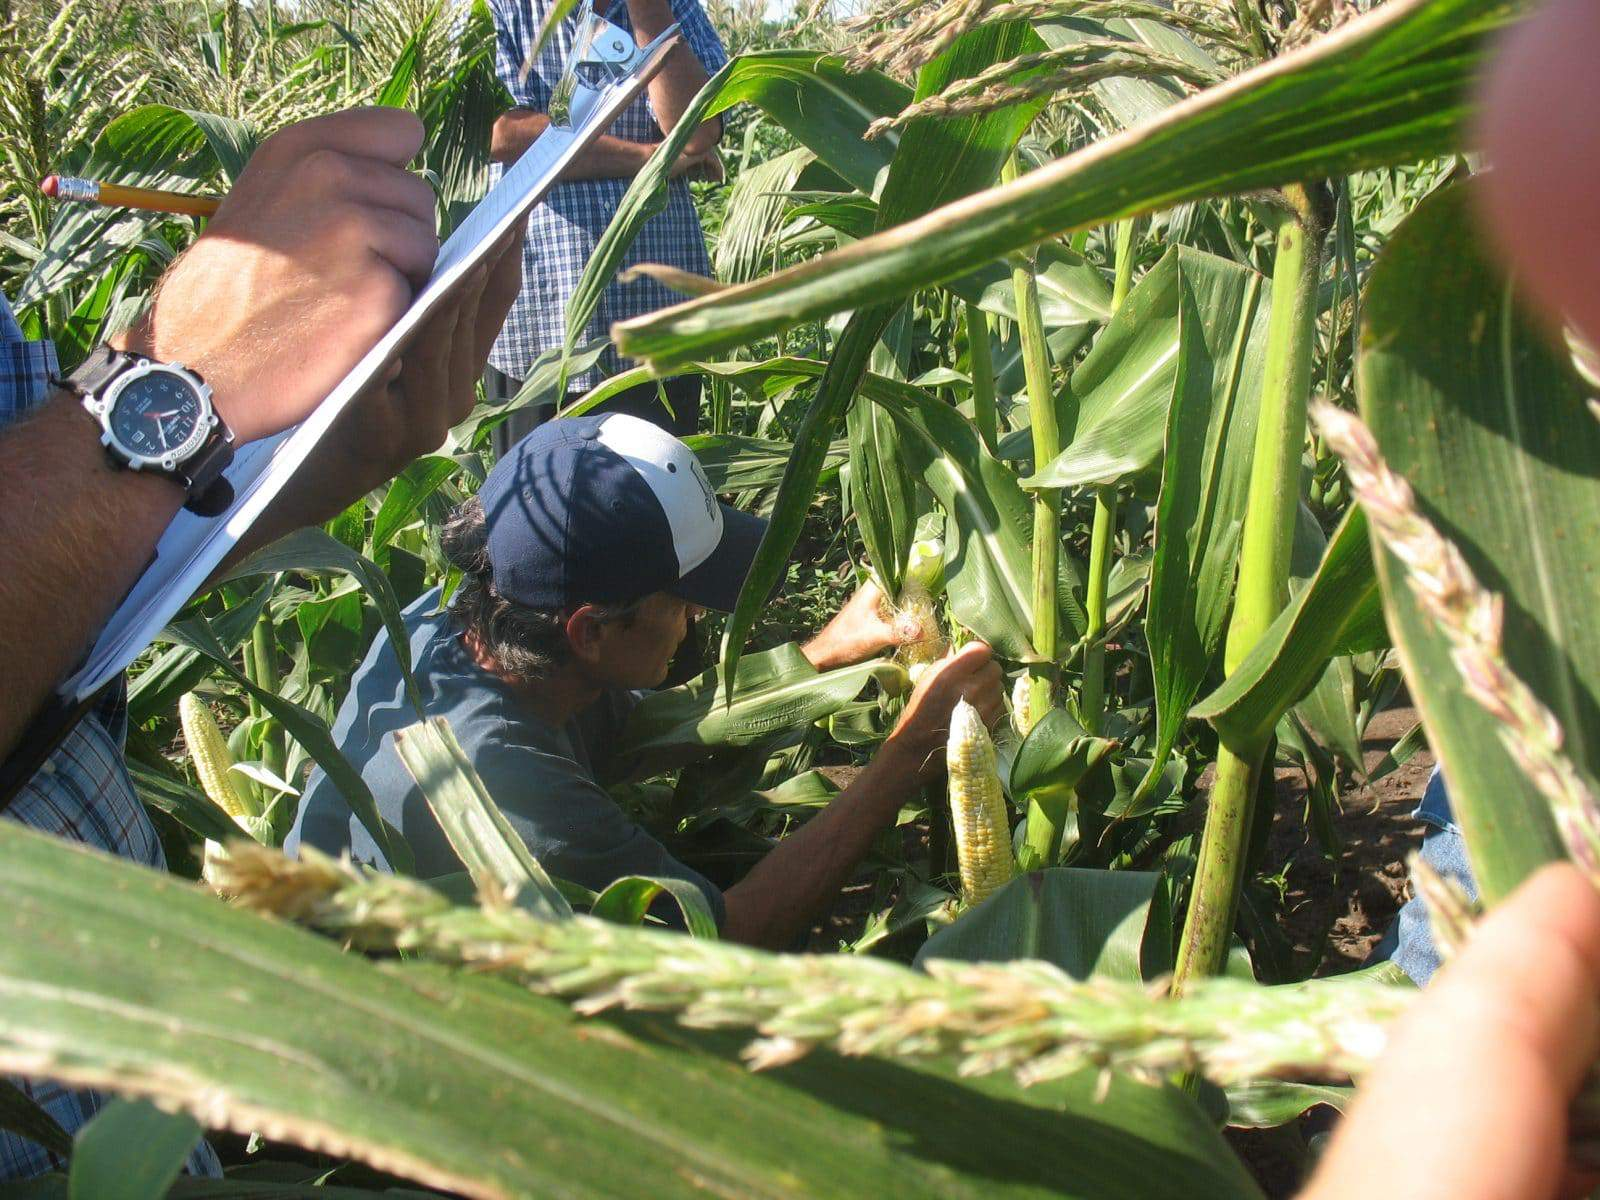 Evalaution of sweet corn at Organic Farming Works.